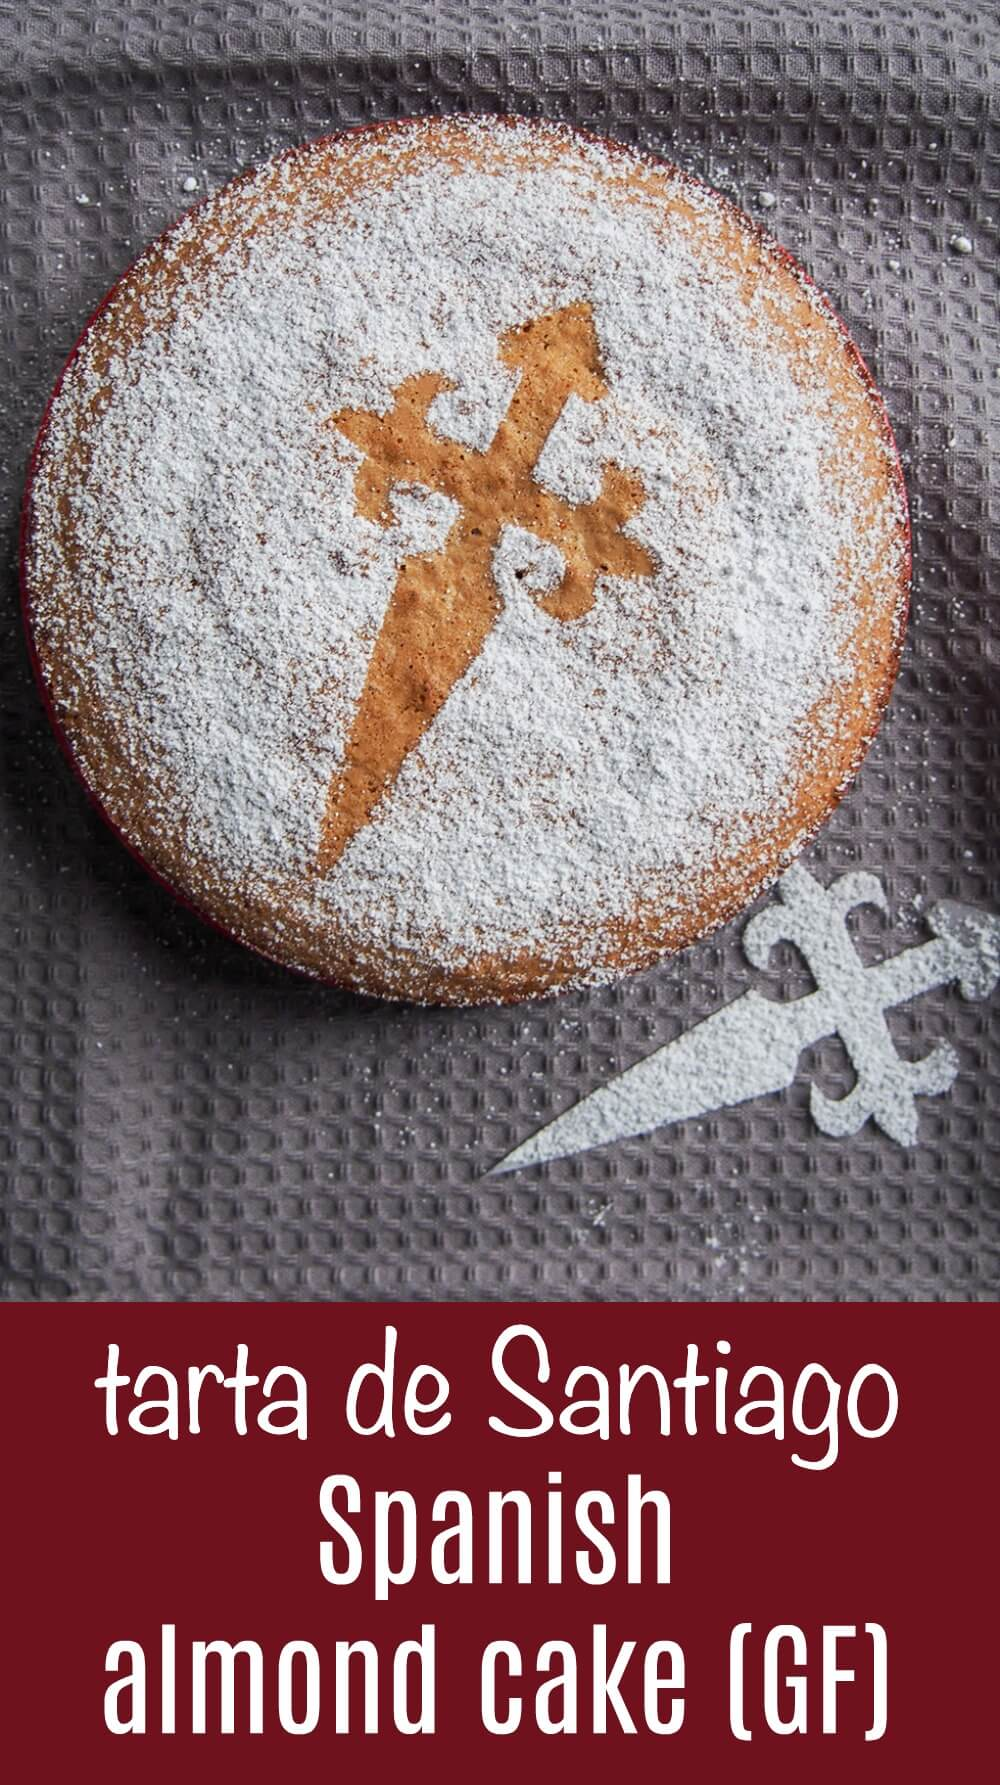 Tarta de Santiago is an almond cake from Spain that couldn't be easier to make. It's naturally gluten free, with a little brightness from lemon and lovely sweet, soft texture. Great for coffee time or dessert. #glutenfree #cake #spanishrecipe #almond